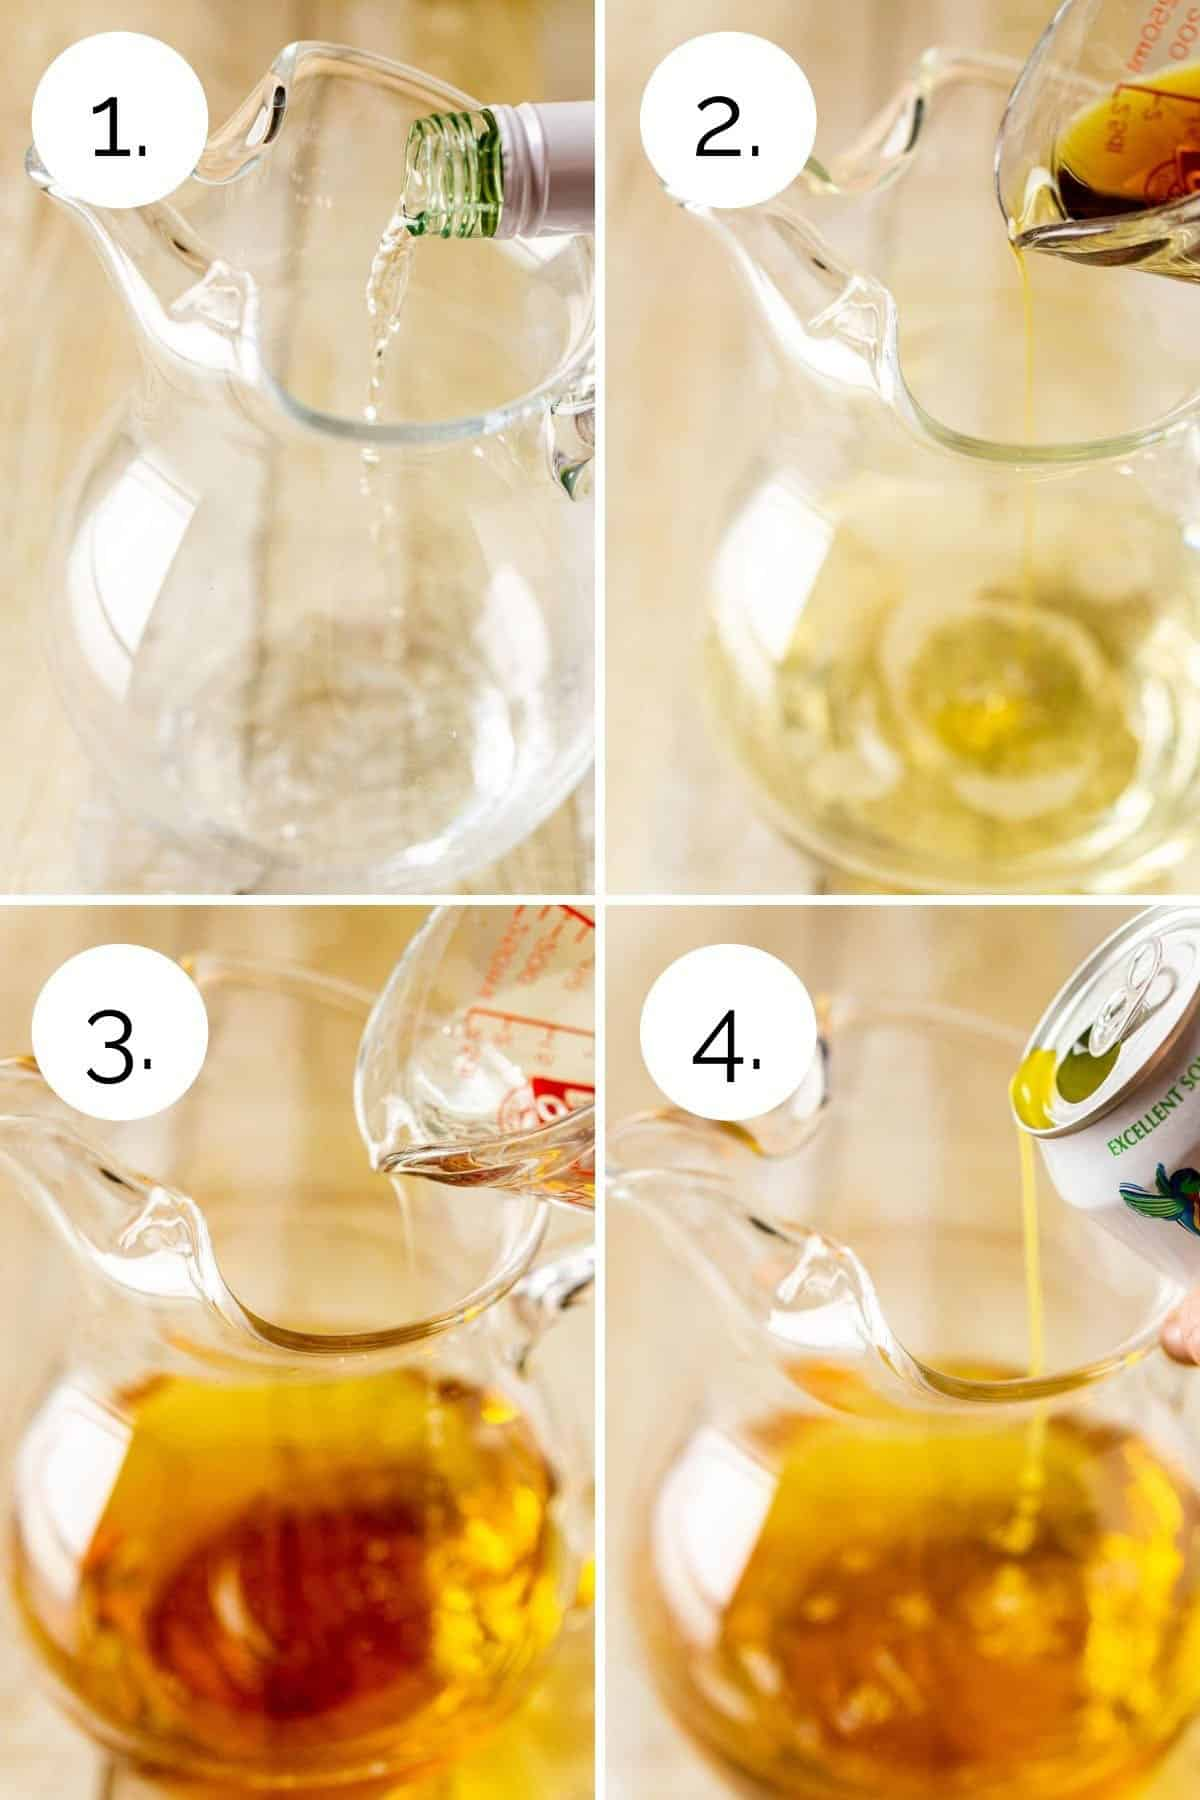 Showing the process of pouring the ingredients into a glass pitcher.